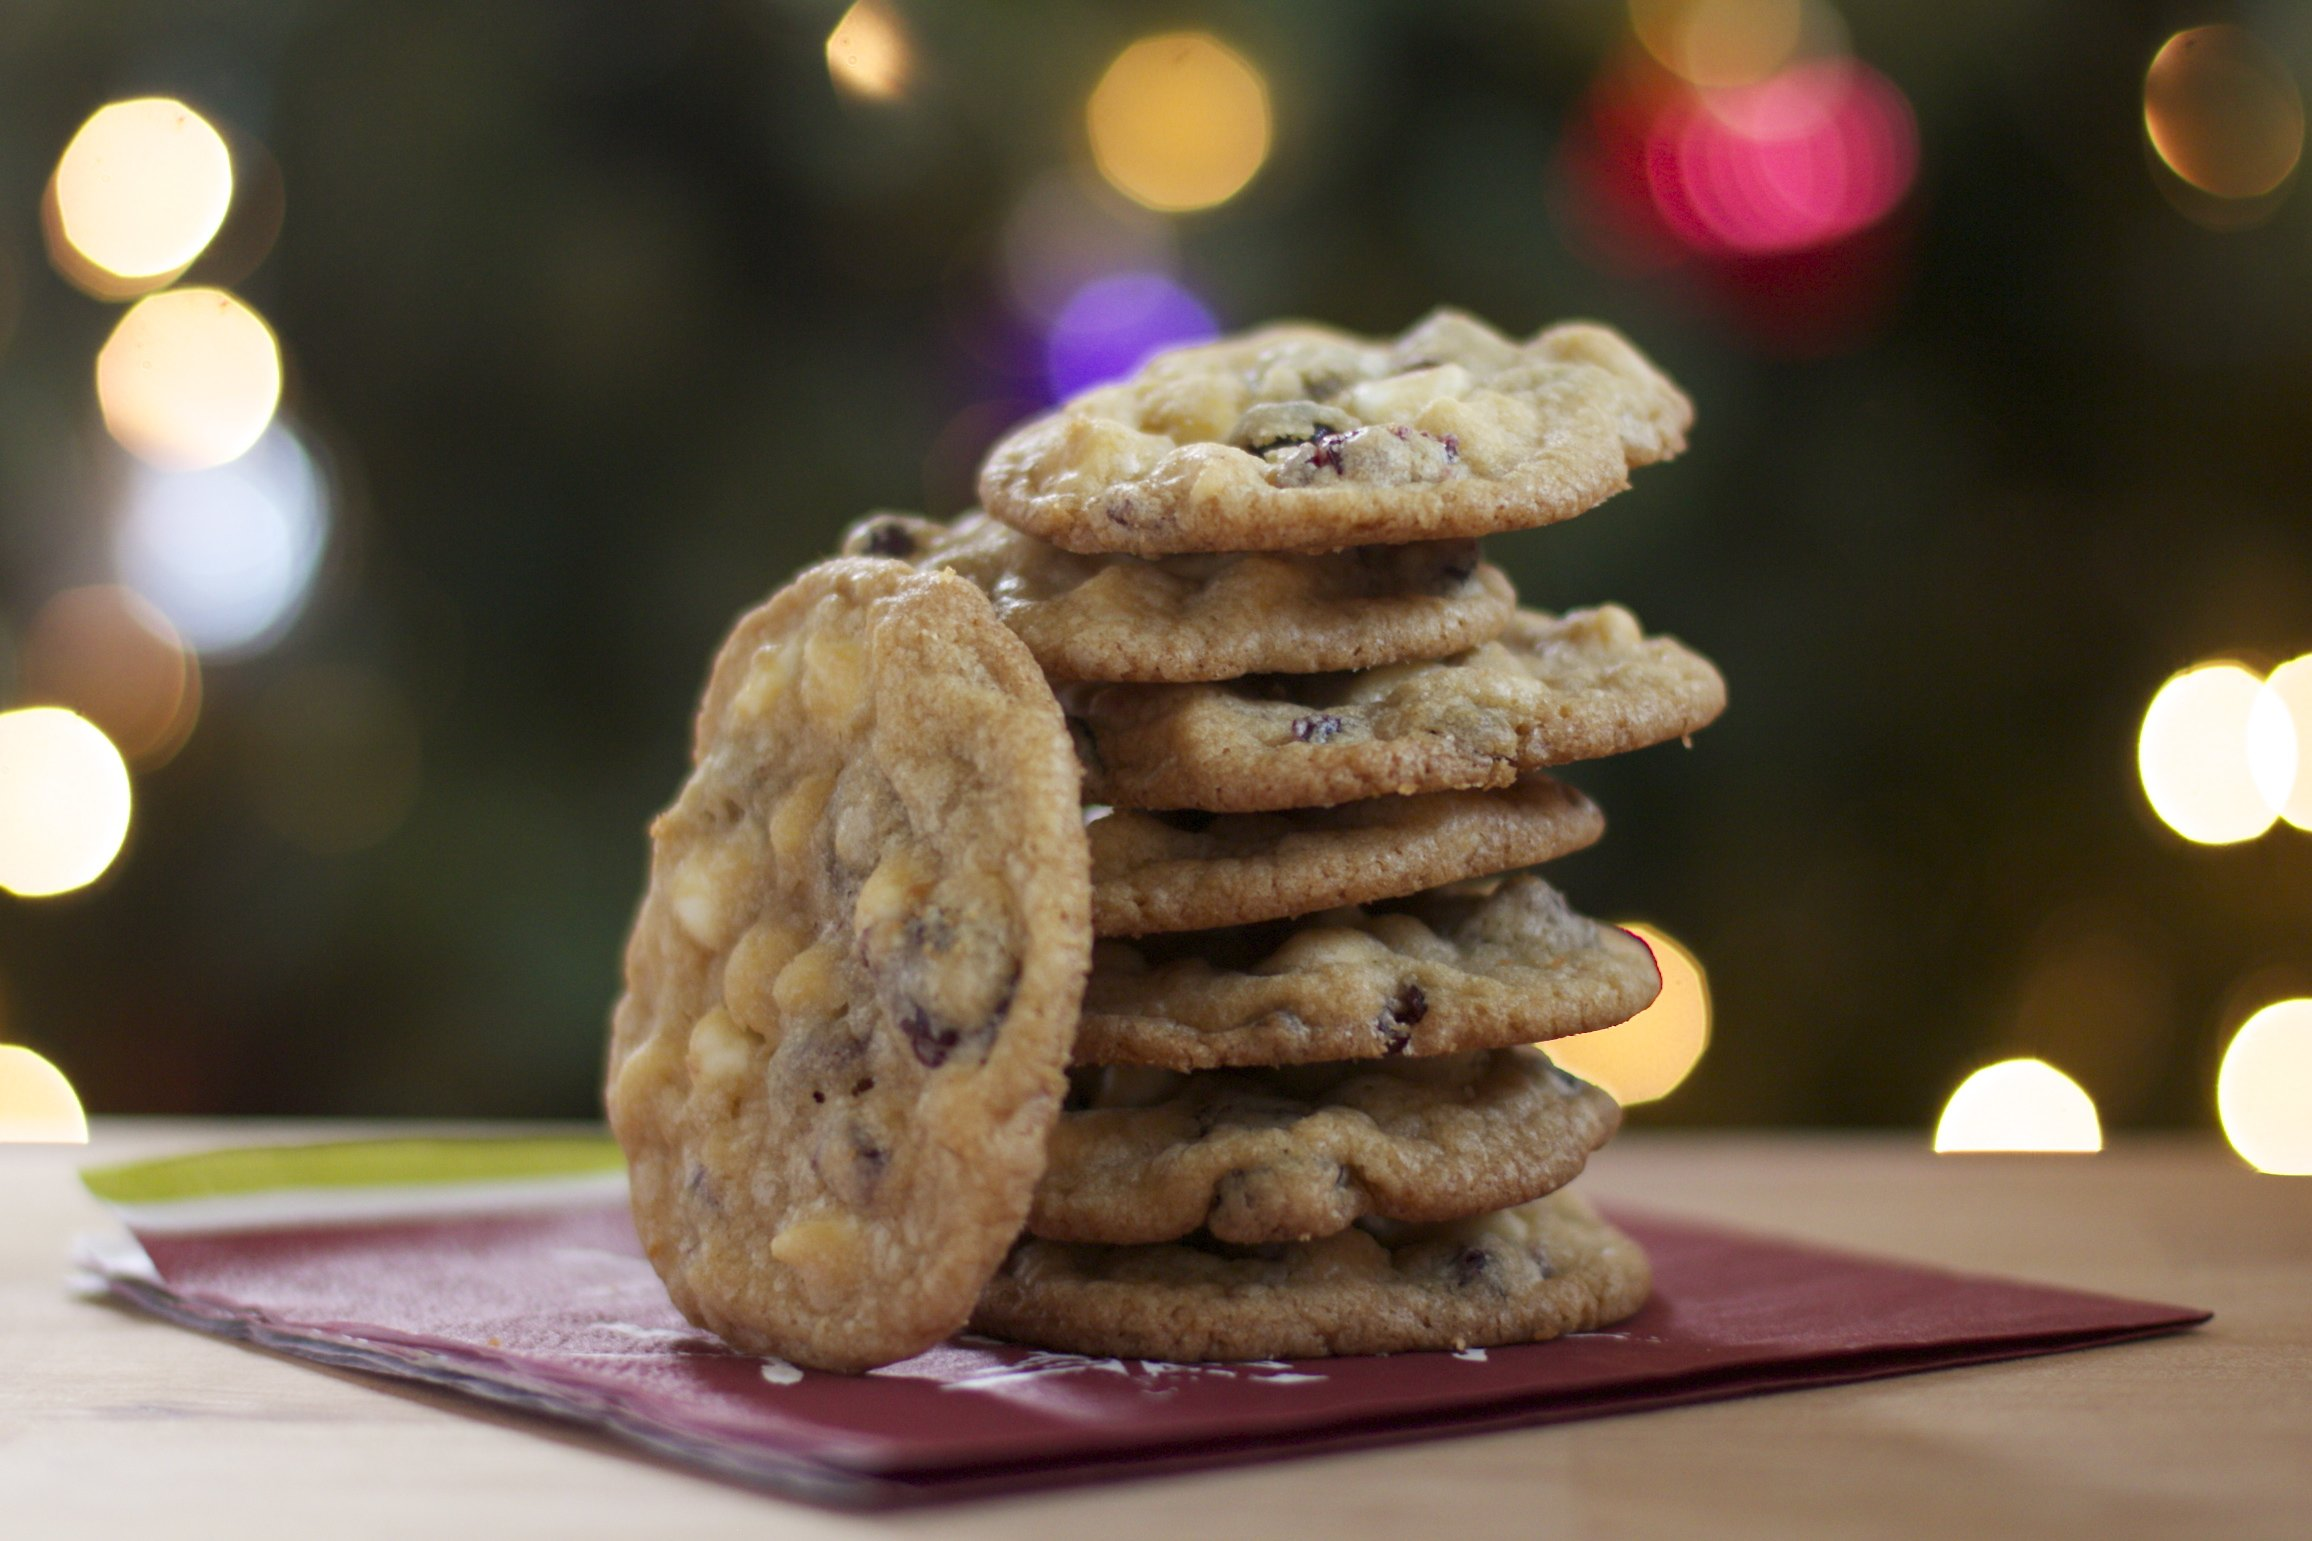 2012-12-20-WhiteChocolateCranberryCookies.jpg